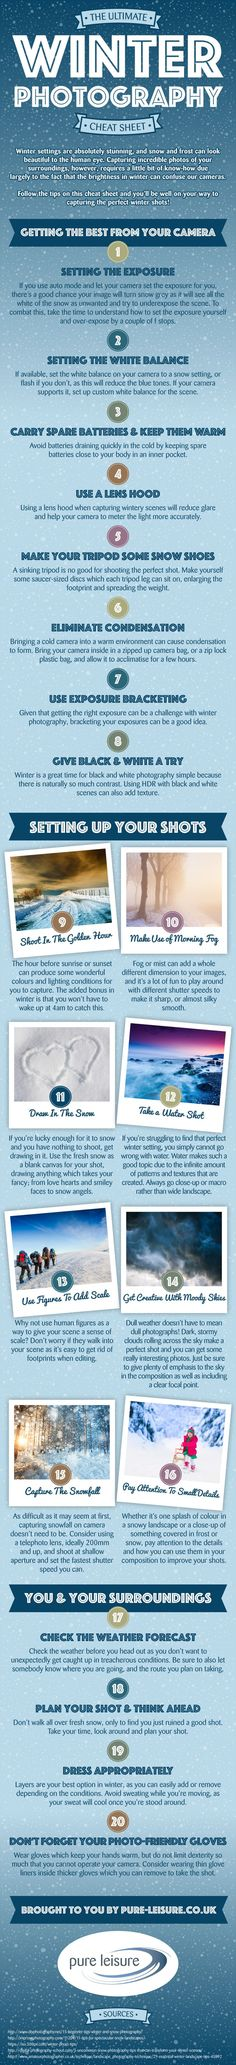 Photography tips | Take better photos | Check out 'The Ultimate Winter Photography Cheat Sheet' to get top tips for taking seasonal shots this winter!